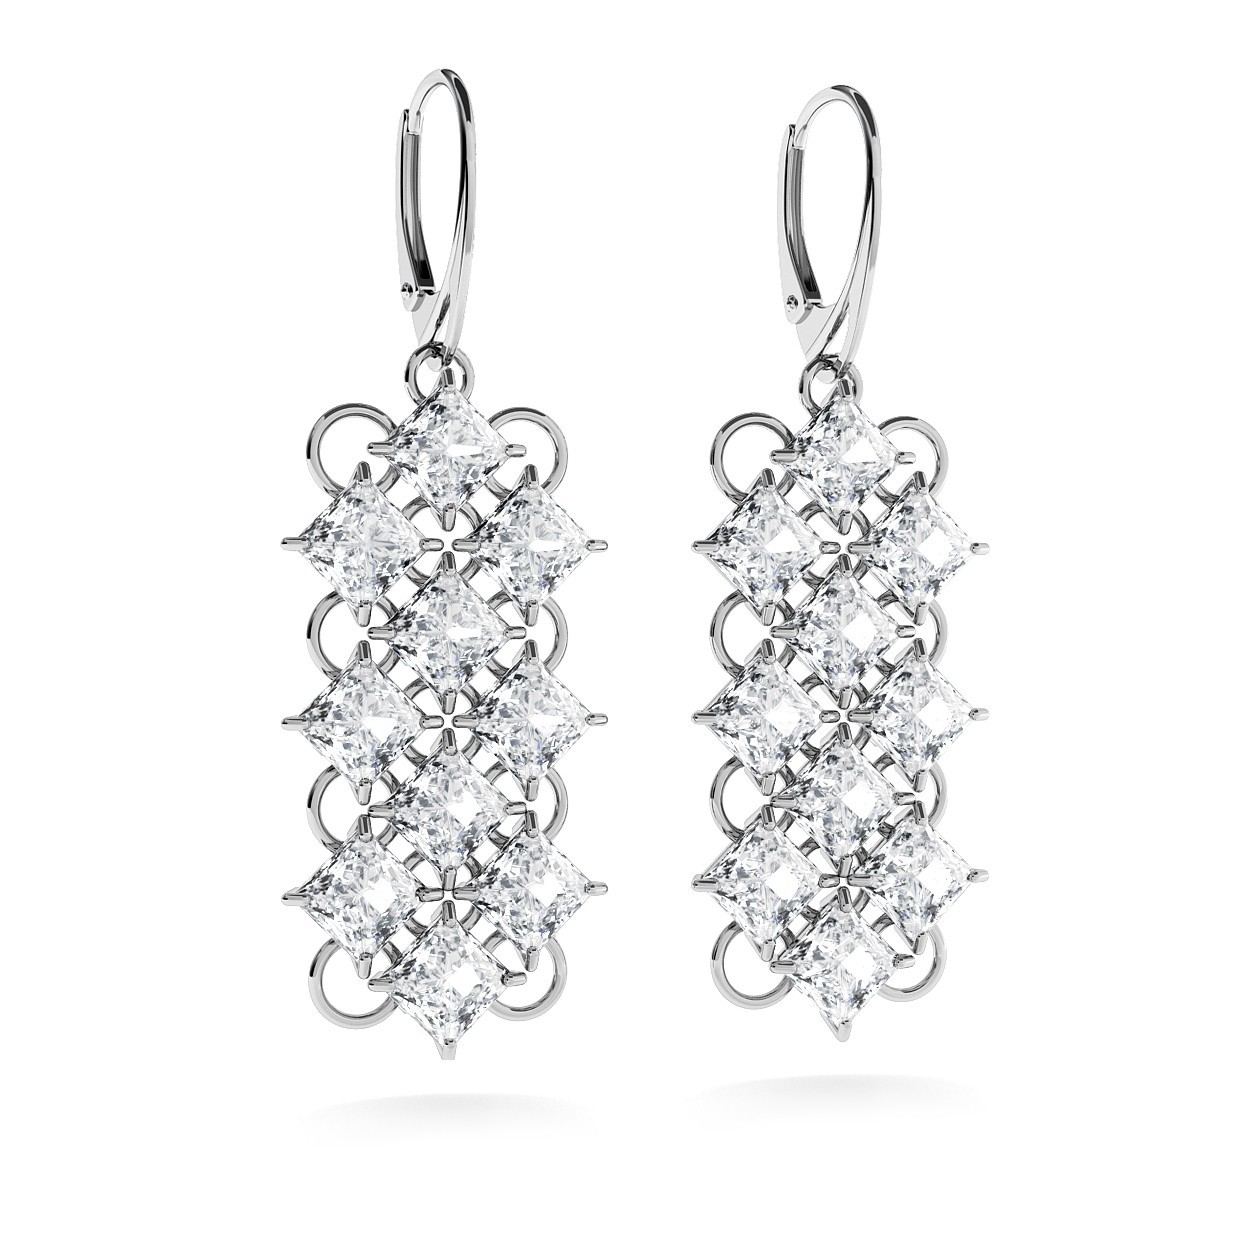 LUXURY EARRINGS WITH ZIRCONS, WEDDING JEWELLERY - MODEL 2